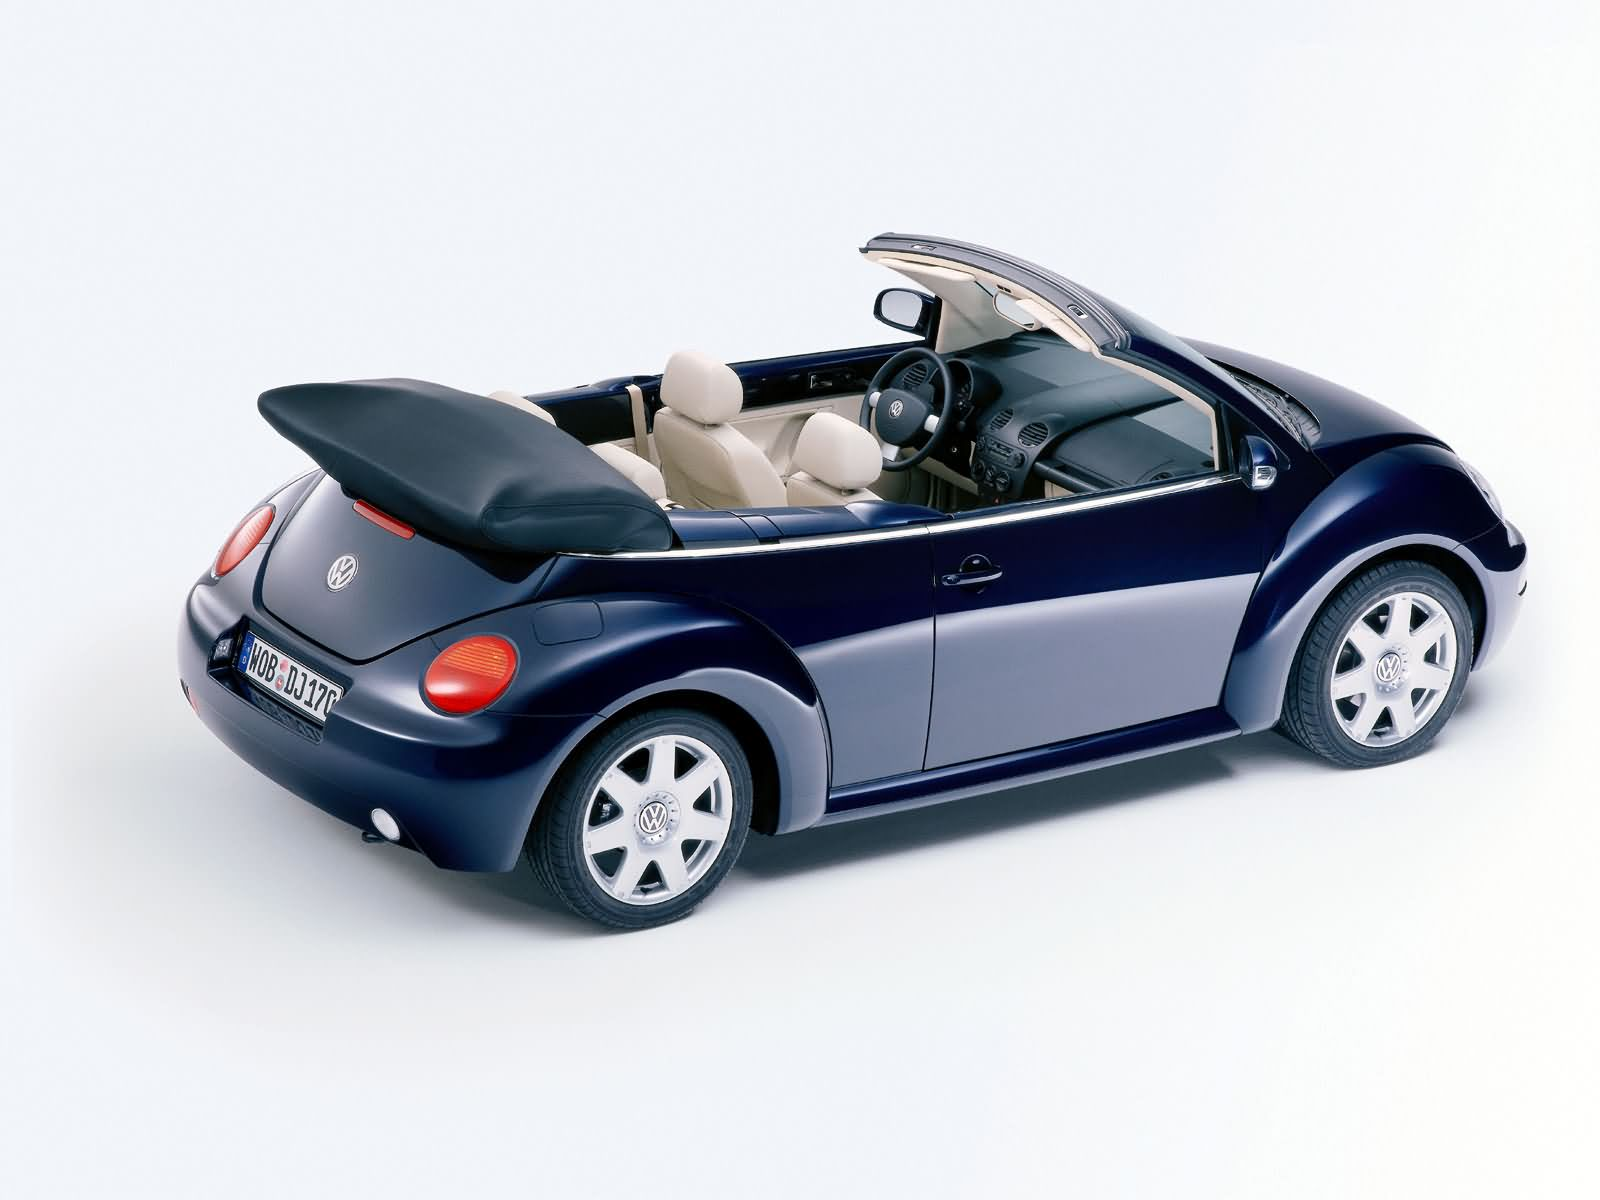 volkswagen new beetle cabriolet picture 17935 volkswagen photo gallery. Black Bedroom Furniture Sets. Home Design Ideas